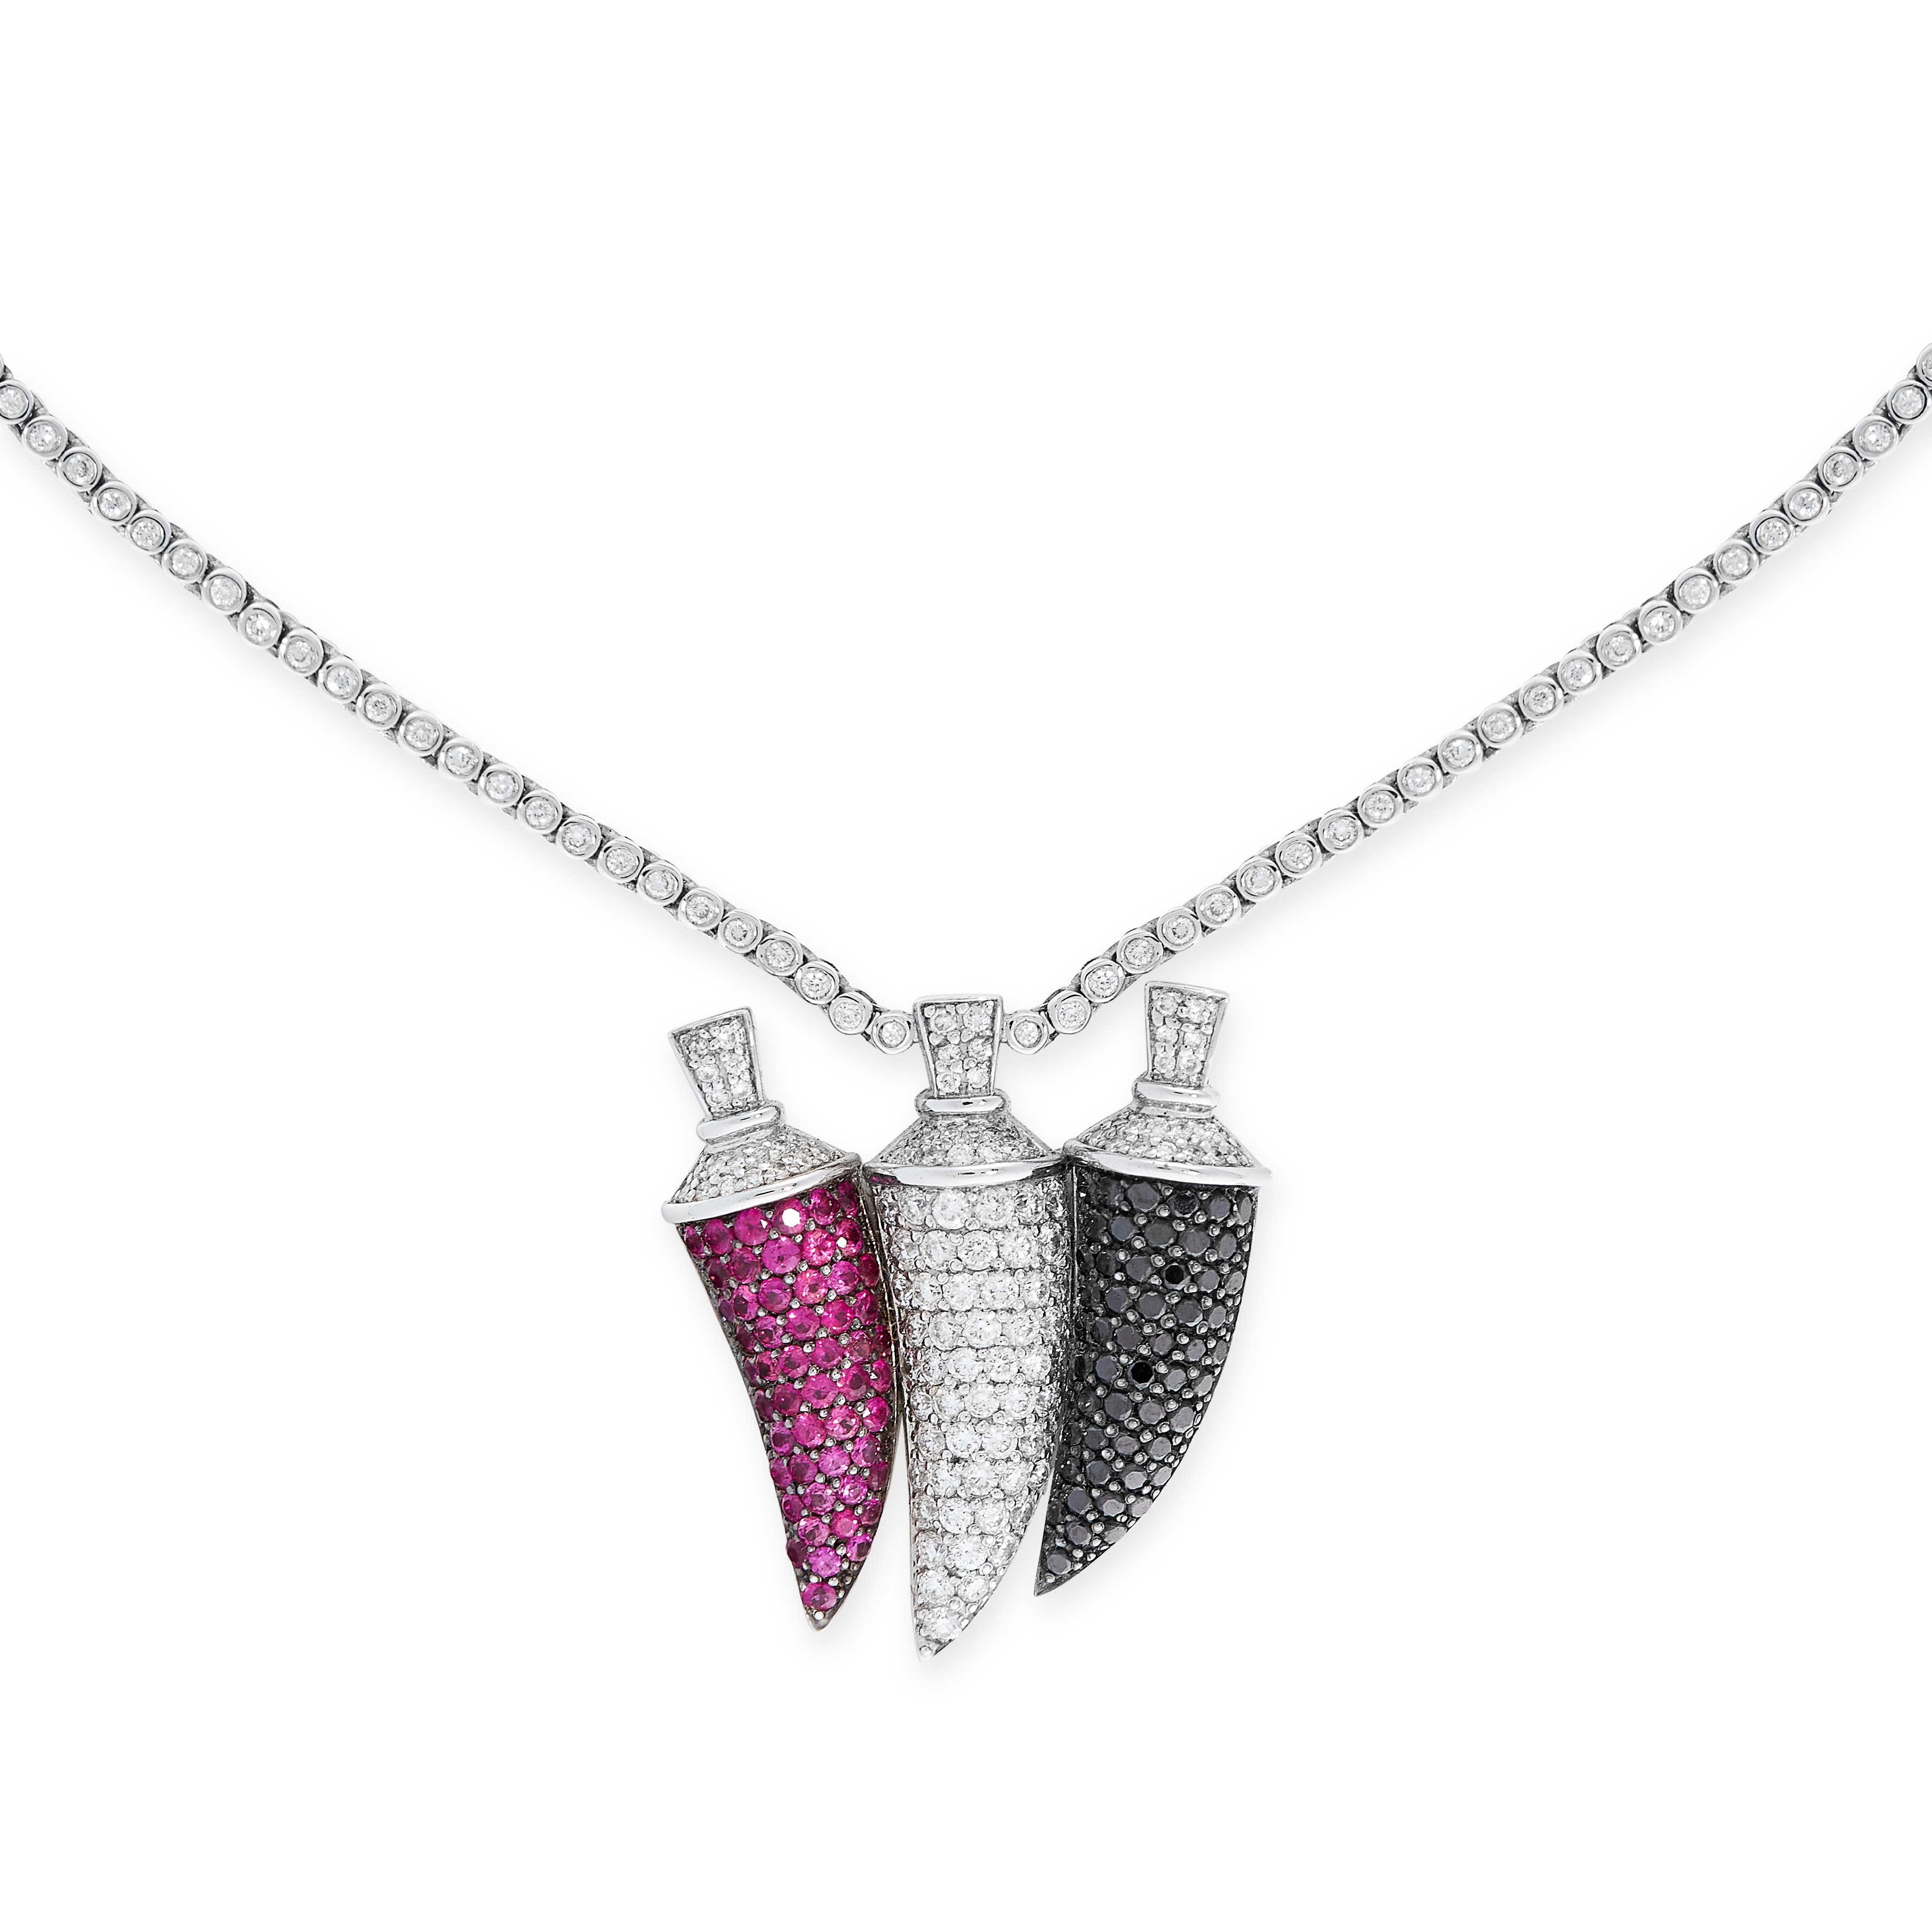 A RUBY, BLACK DIAMOND AND WHITE DIAMOND PENDANT NECKLACE in 18ct white gold, designed to depict a